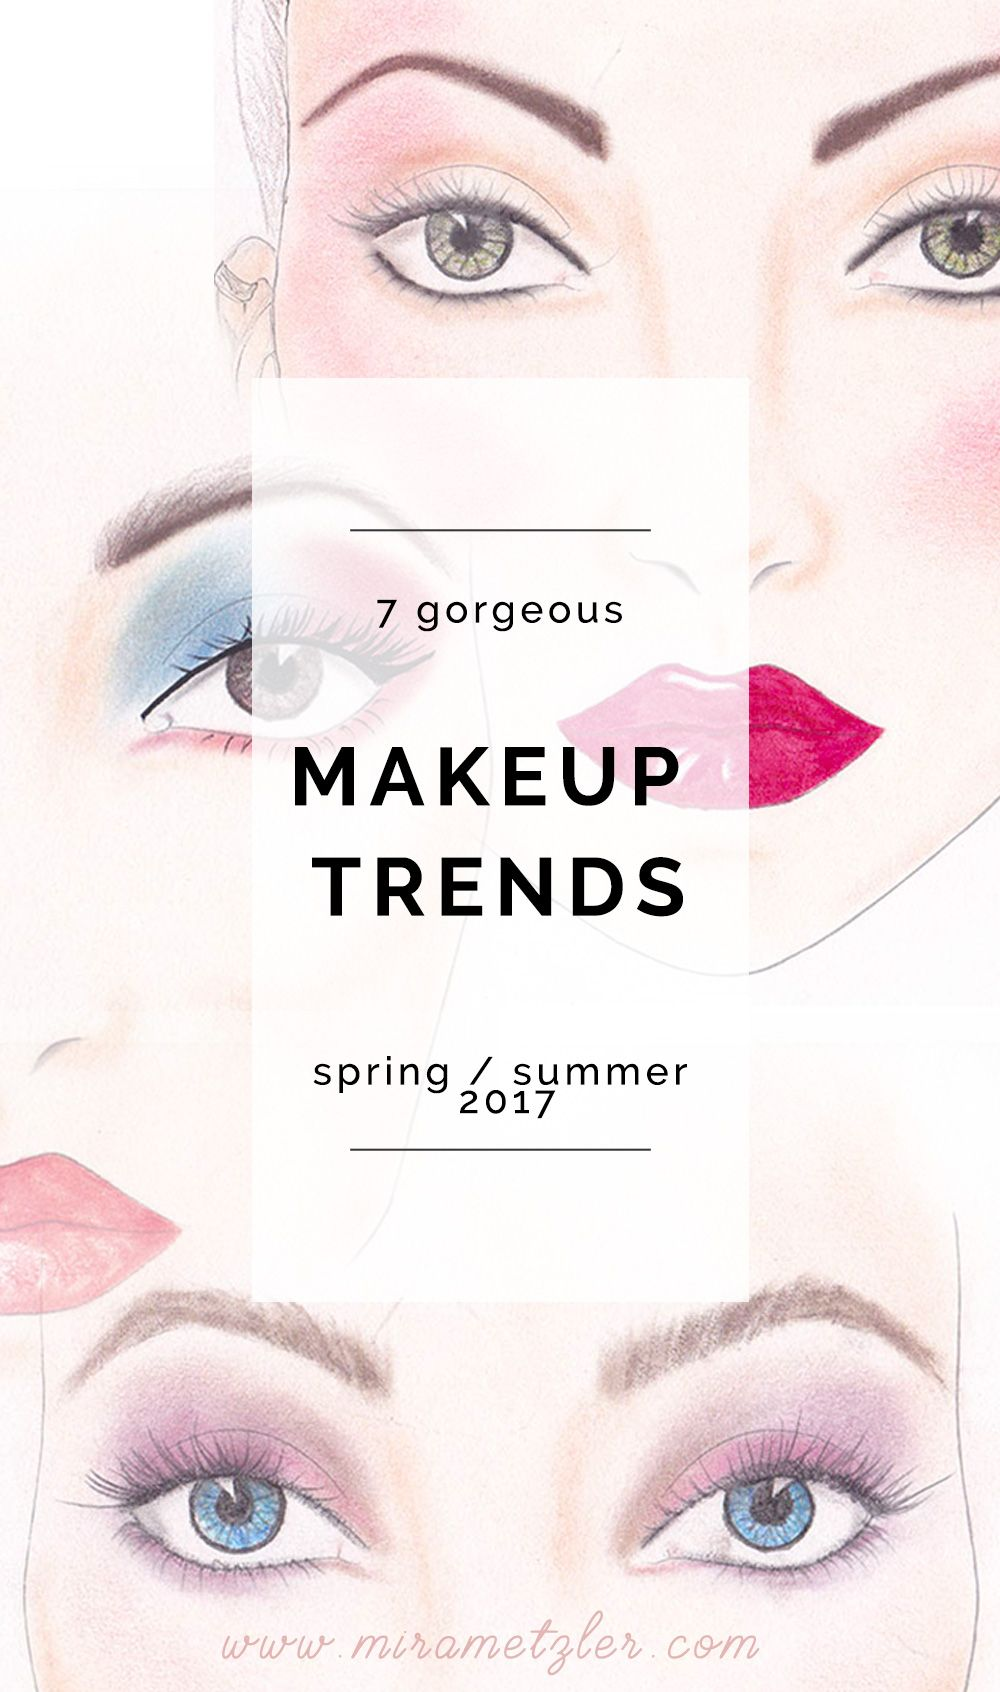 As the temperature gets higher and the day longer, I start to feel like playing with makeup a bit more and have some colorful fun. Here are my 7 favorites.